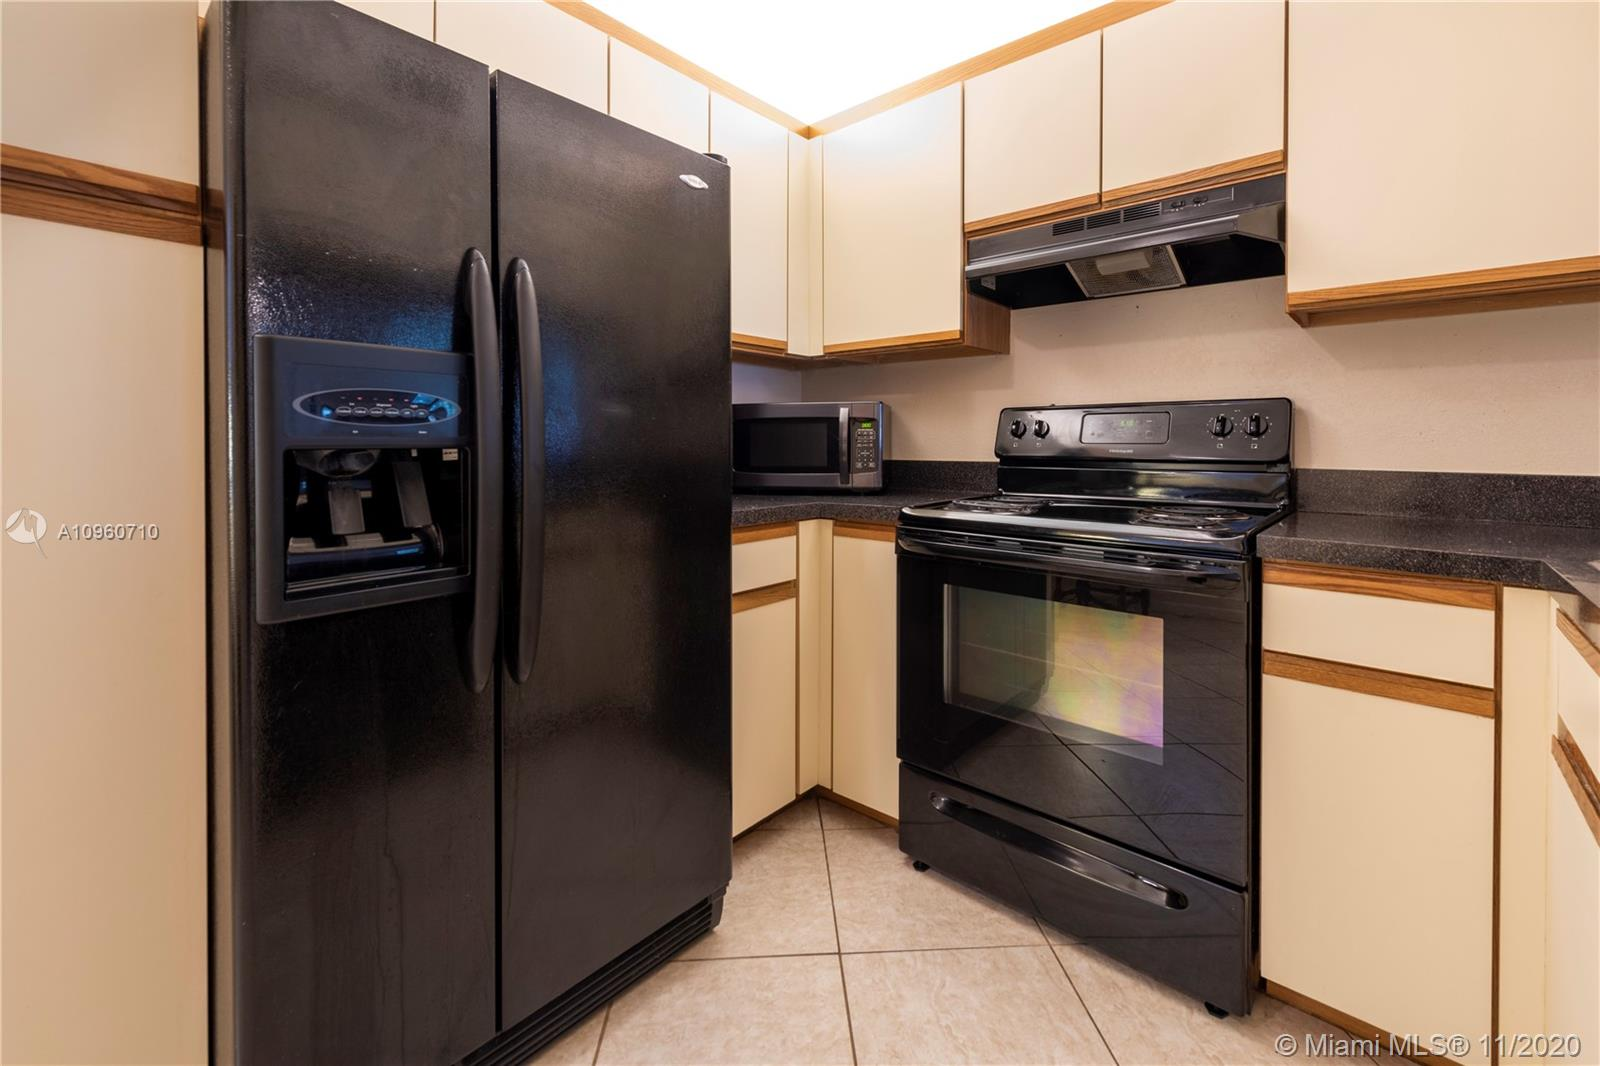 10690 NW 14th St # 130, Plantation, Florida 33322, 2 Bedrooms Bedrooms, ,2 BathroomsBathrooms,Residential,For Sale,10690 NW 14th St # 130,A10960710